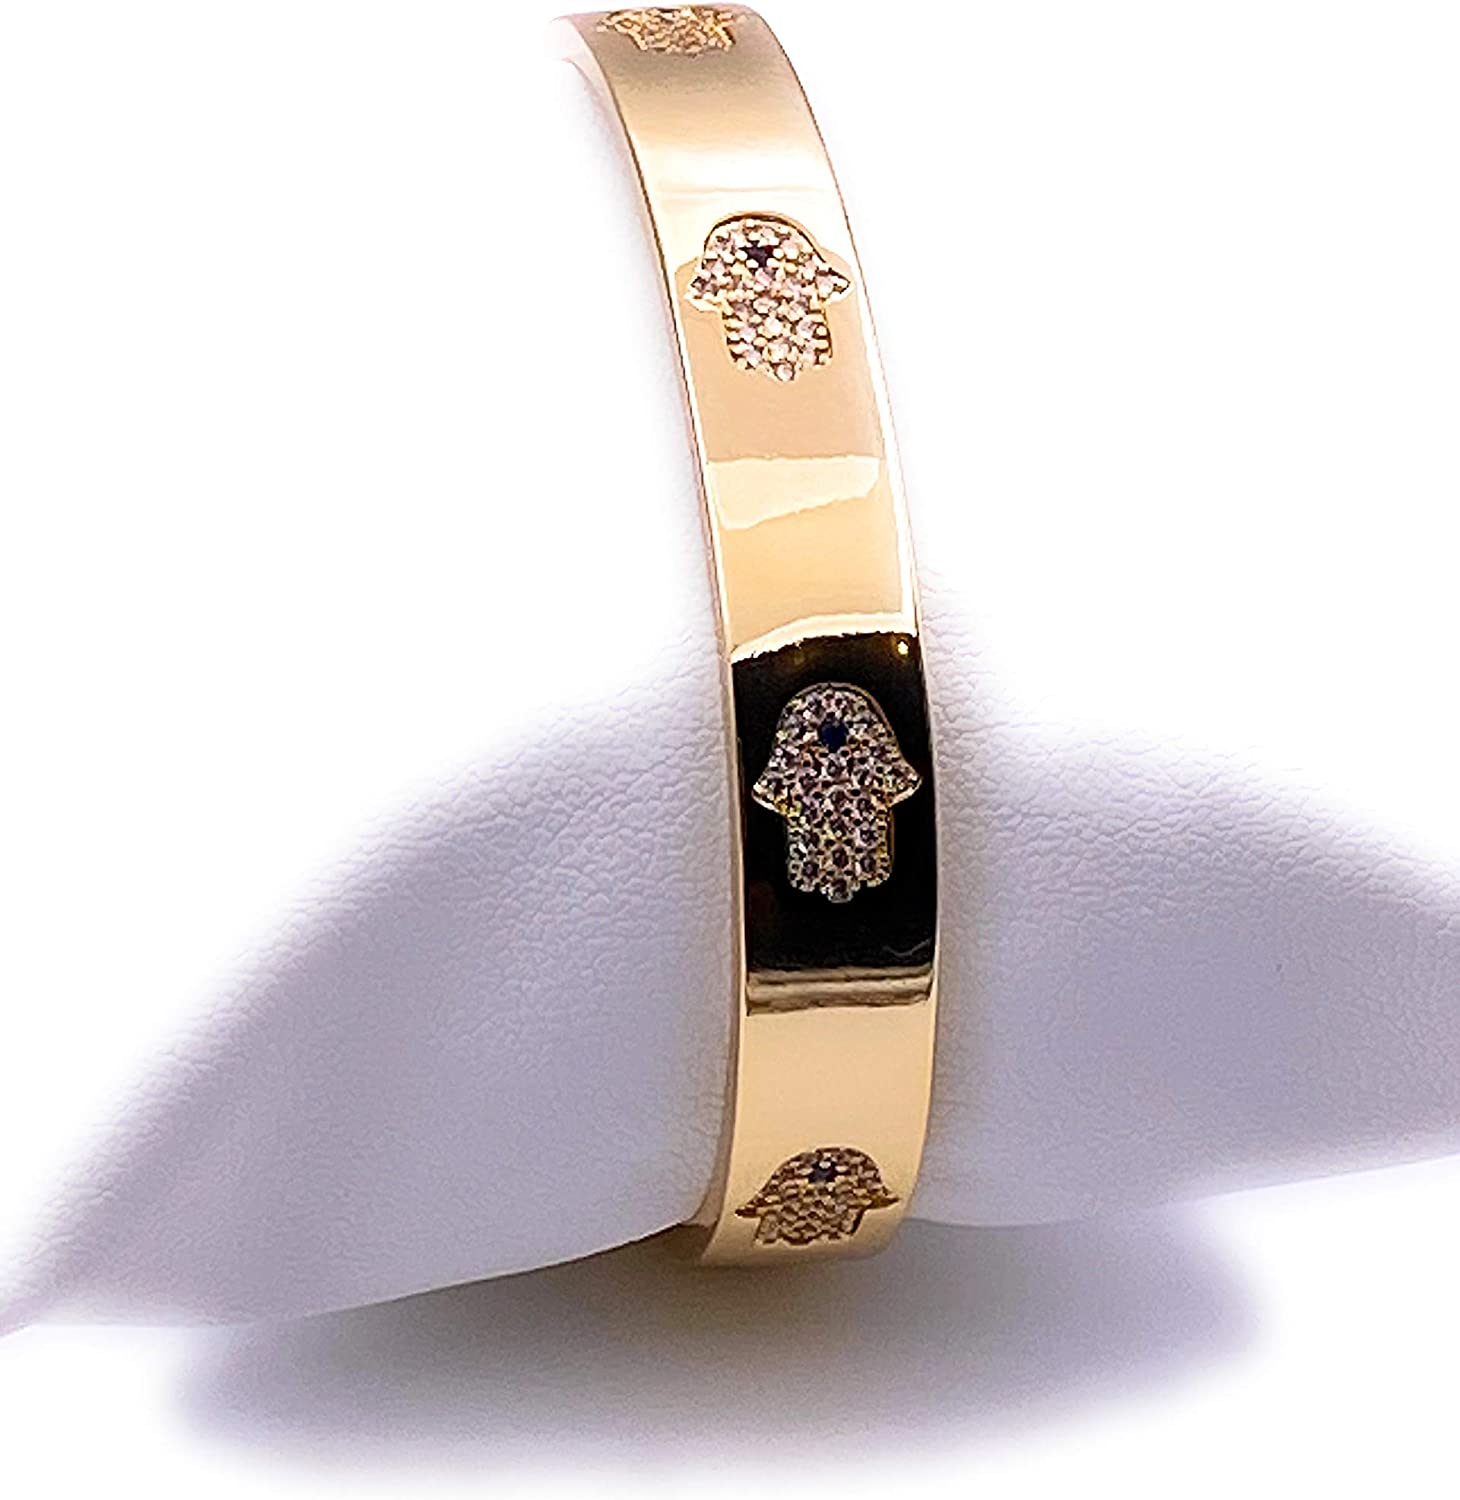 LESLIE BOULES 18K Gold Plated Hamsa Hand Cuff Bracelet for Women Lucky & Protection Jewelry for Her